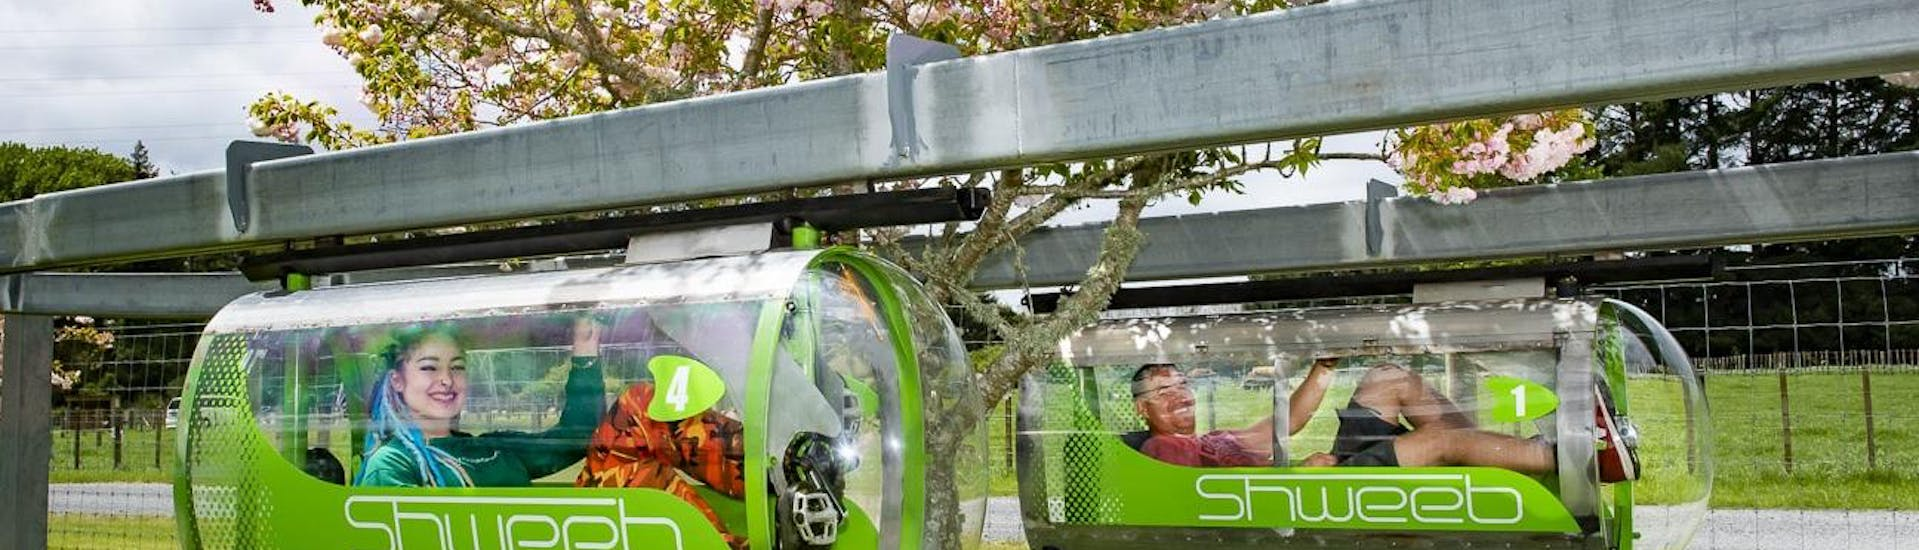 A girl is racing in an aerodynamic pod against her friend during the Shweeb Racer in Rotorua located in Velocity Valley Rotorua Adventure Park.